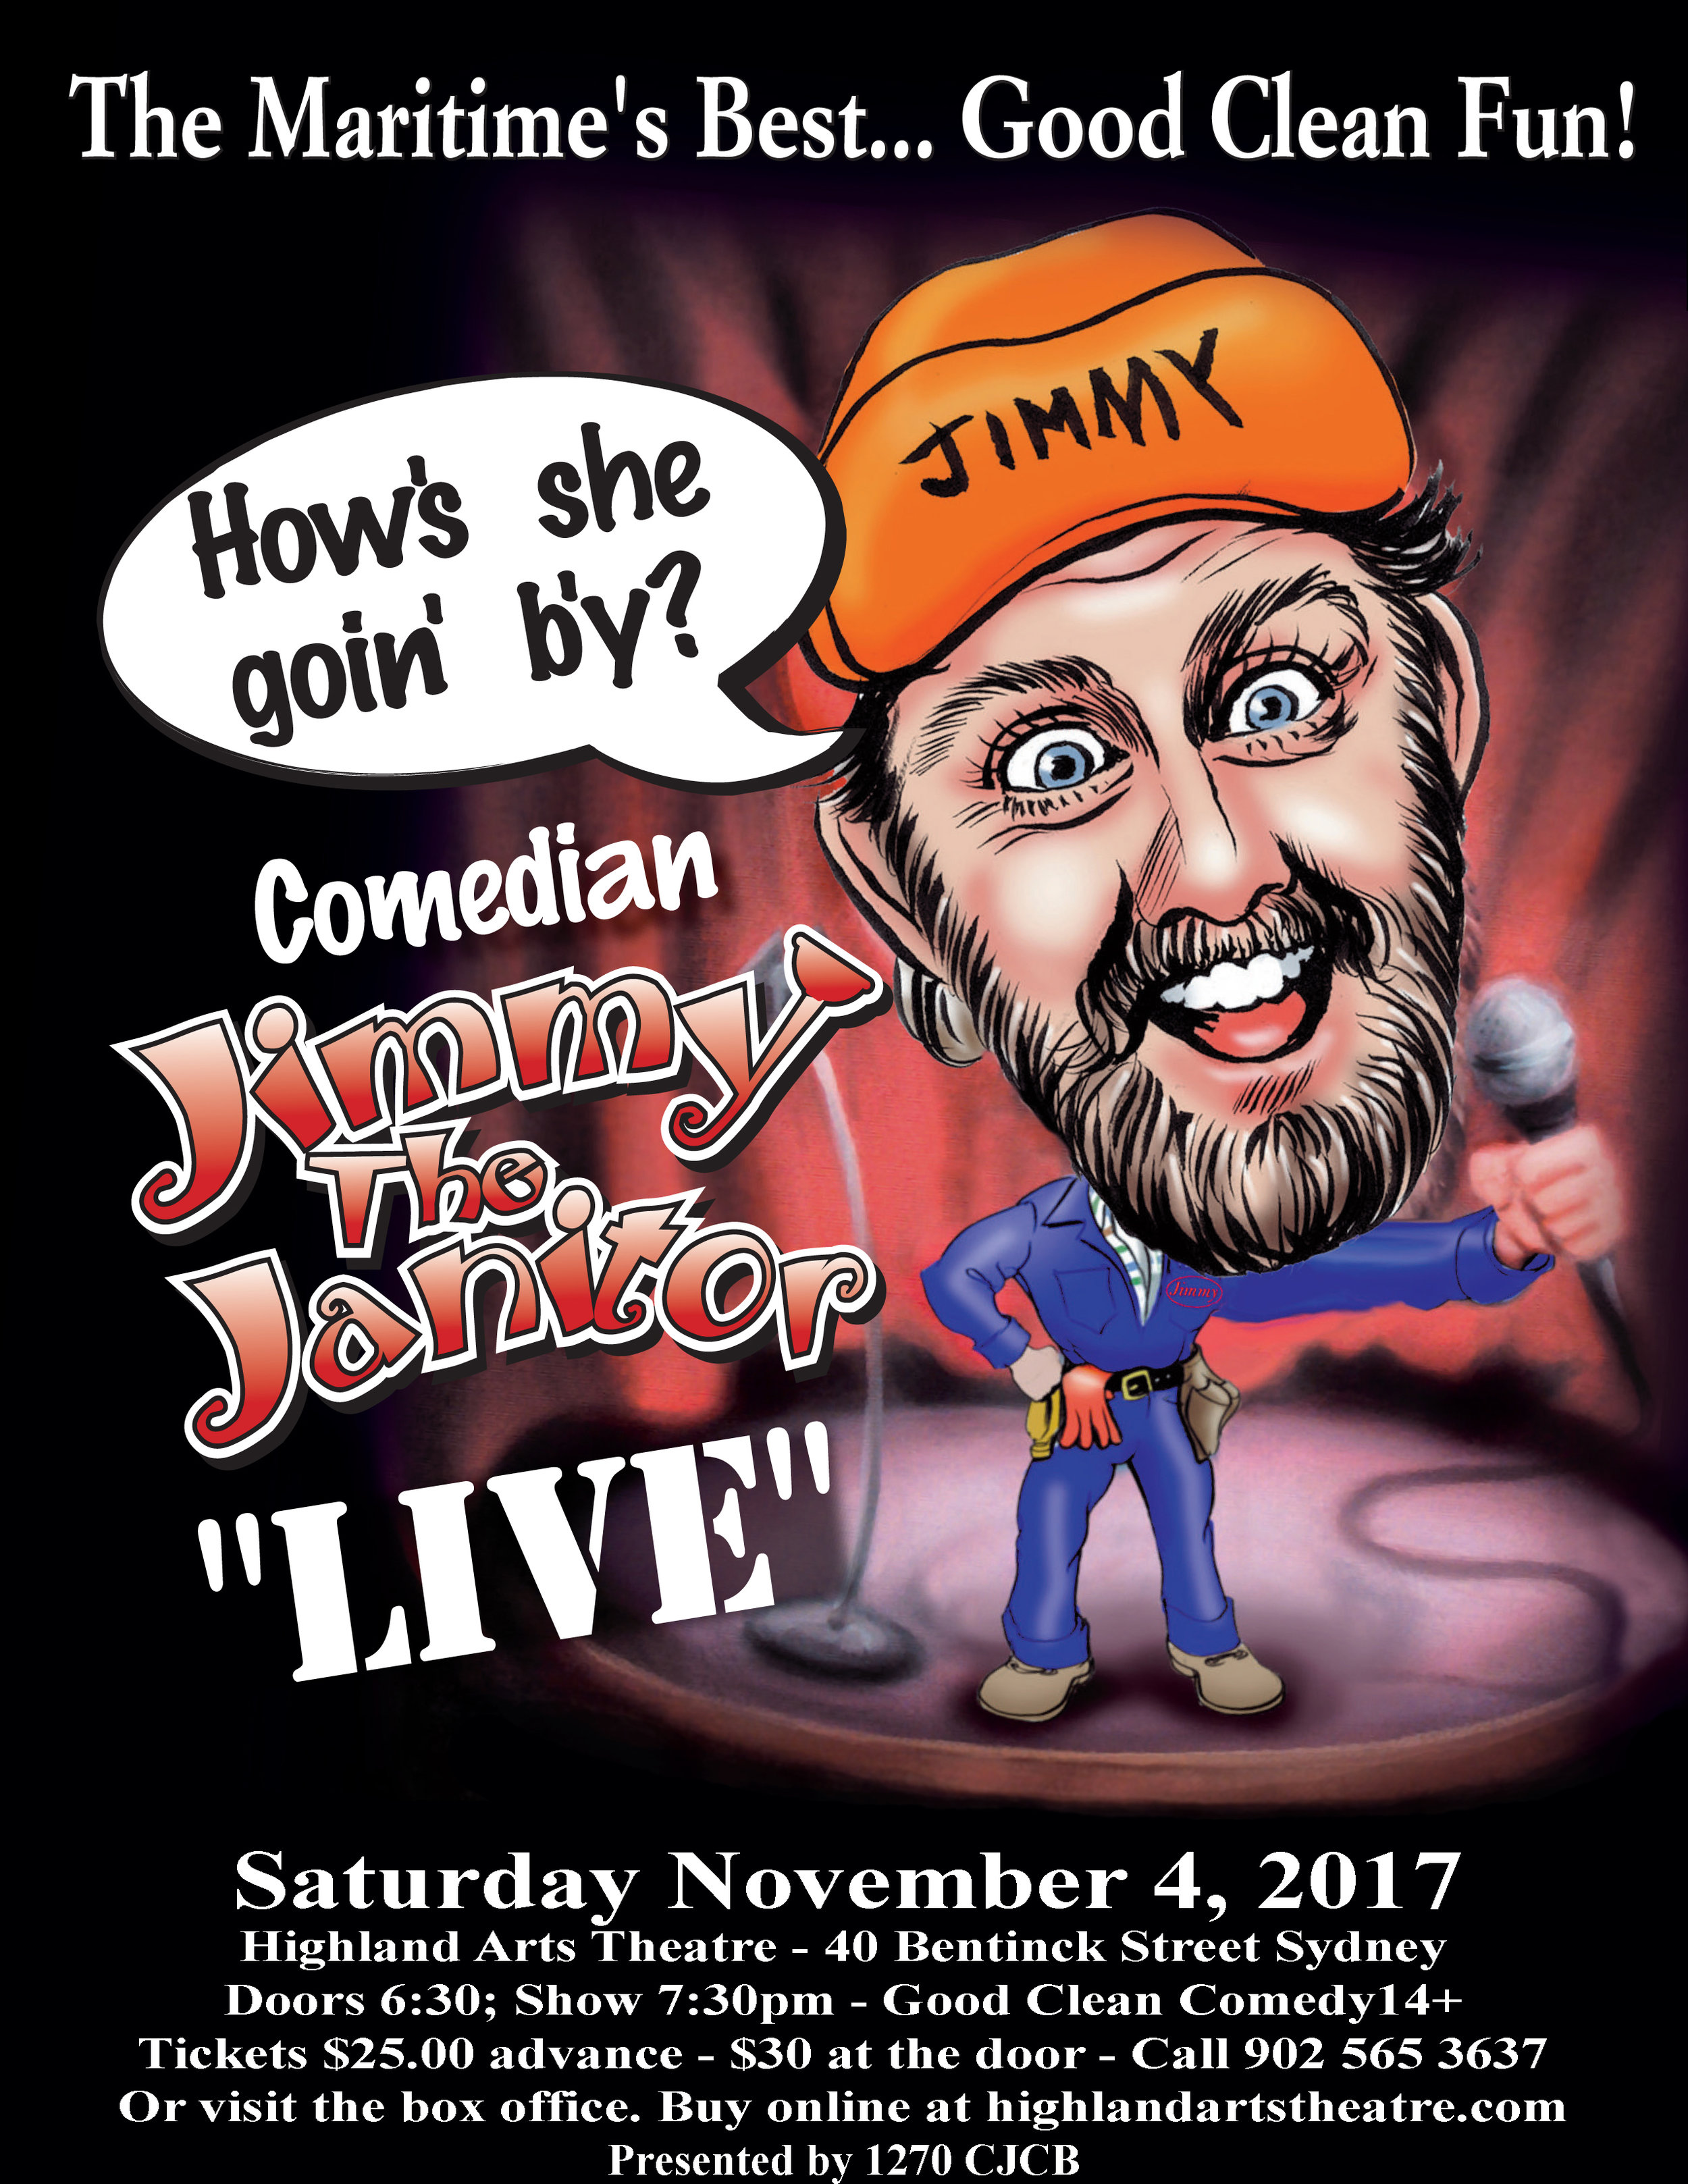 Jimmy Janitor Saturday Nov 4 2017 Sydney Poster Revised.jpg